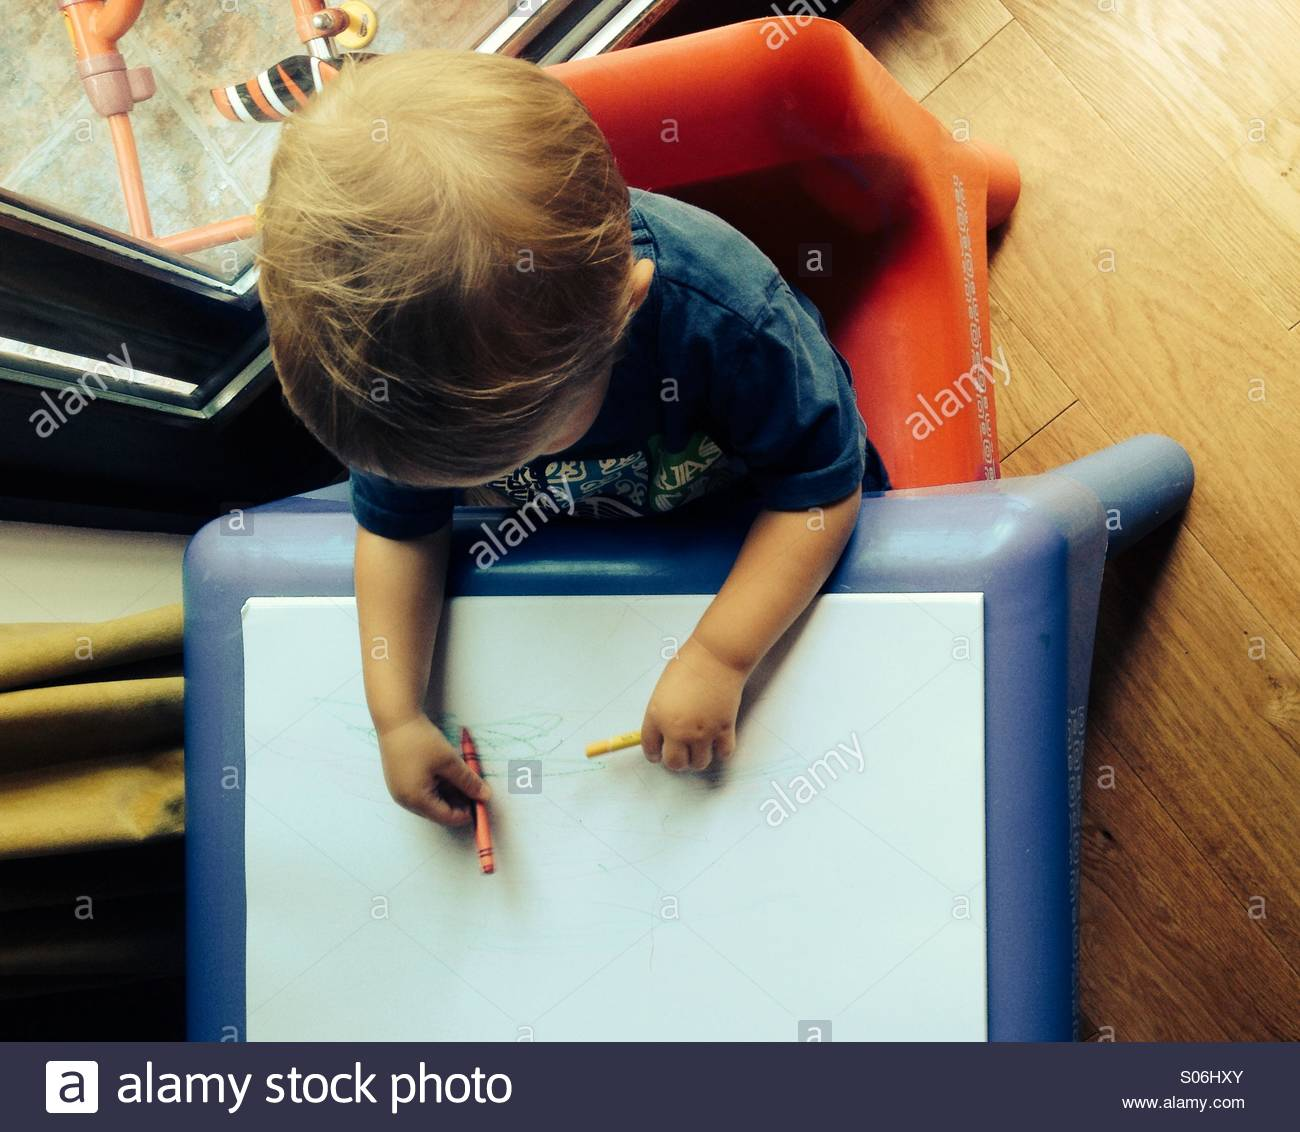 Toddler drawing first scribbles on paper with crayons - Stock Image